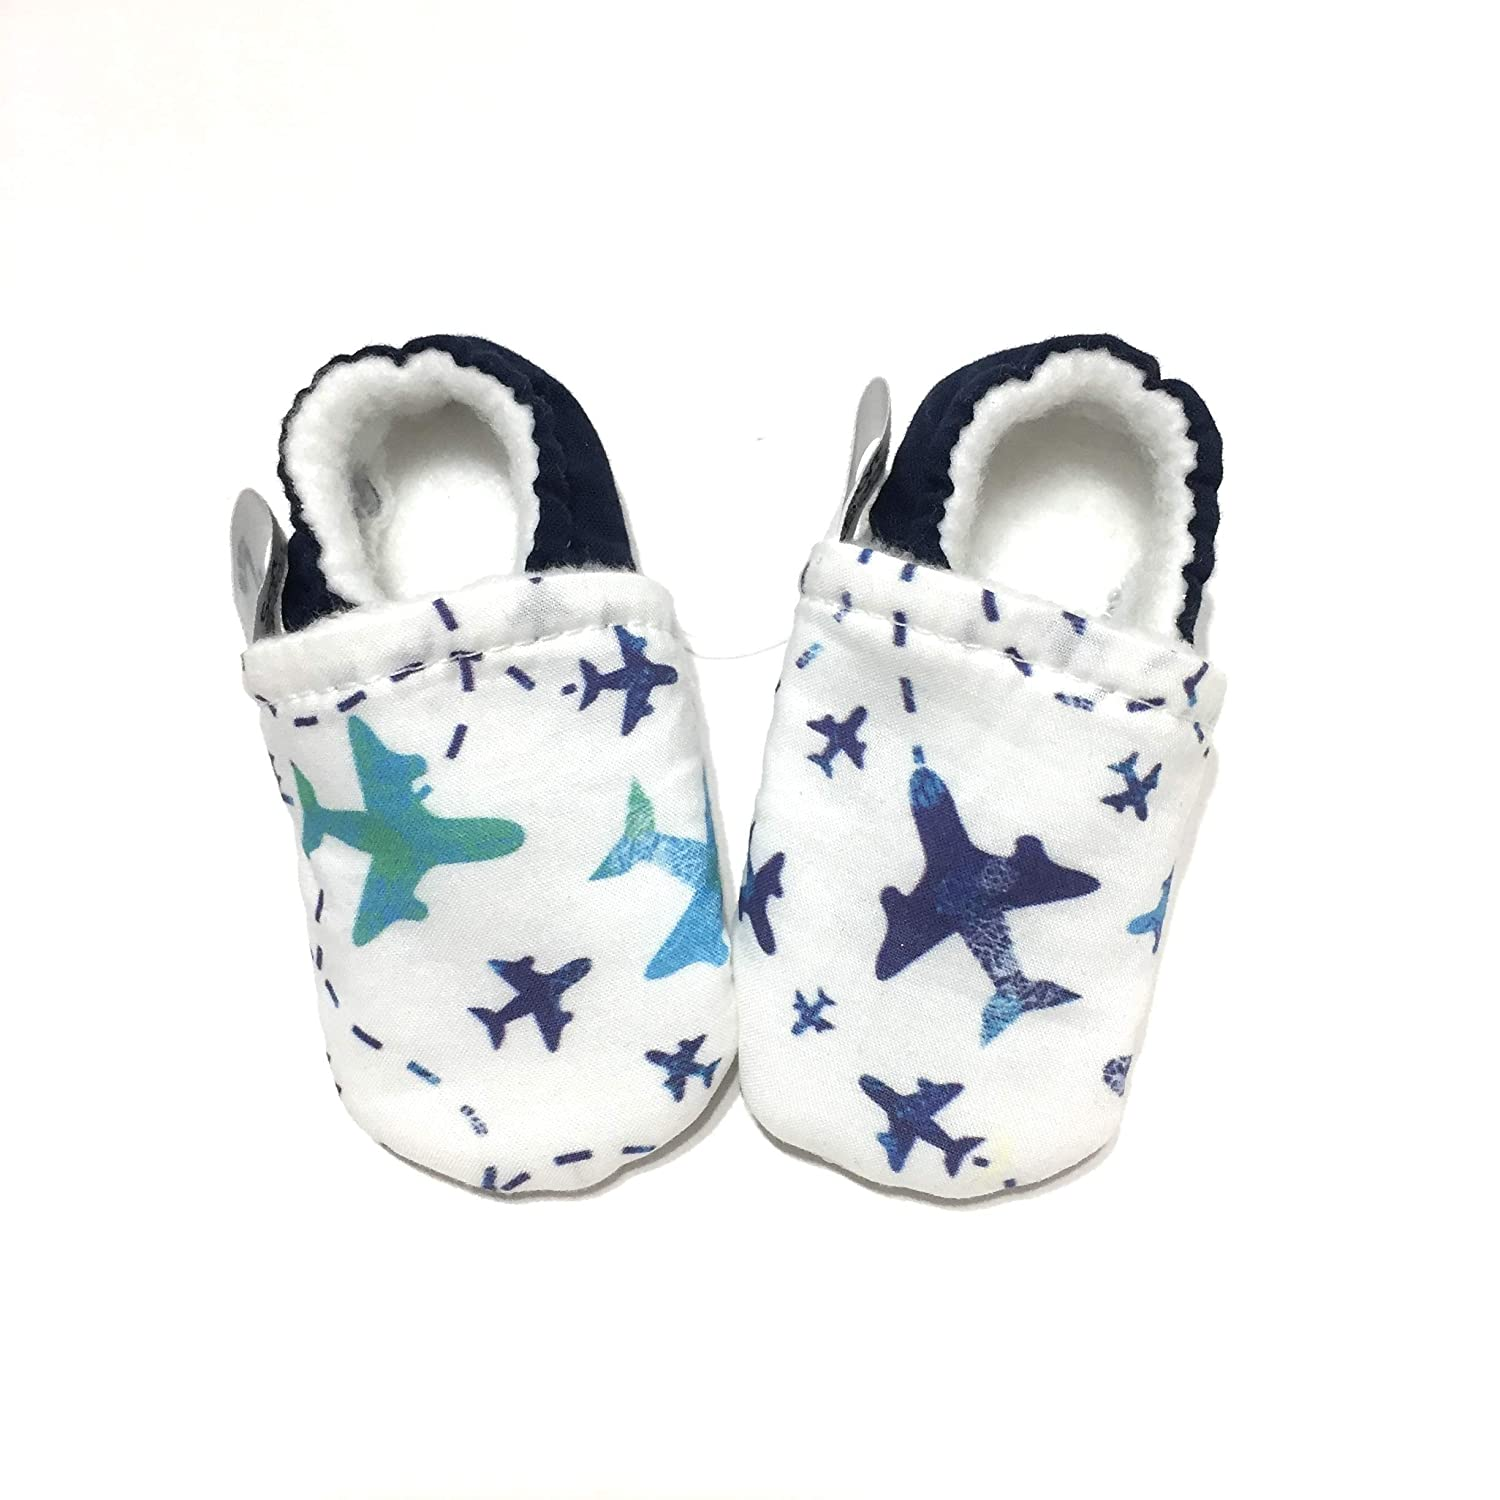 AIRPLANE BABY SHOES, Pilot Gift, Aeroplane Newborn Booties, Toddler Pilot in Training, Boy Baby Slippers, Blue Aircraft Moccasins, Aeronautical Baby Shower Present, Infant Aviator,